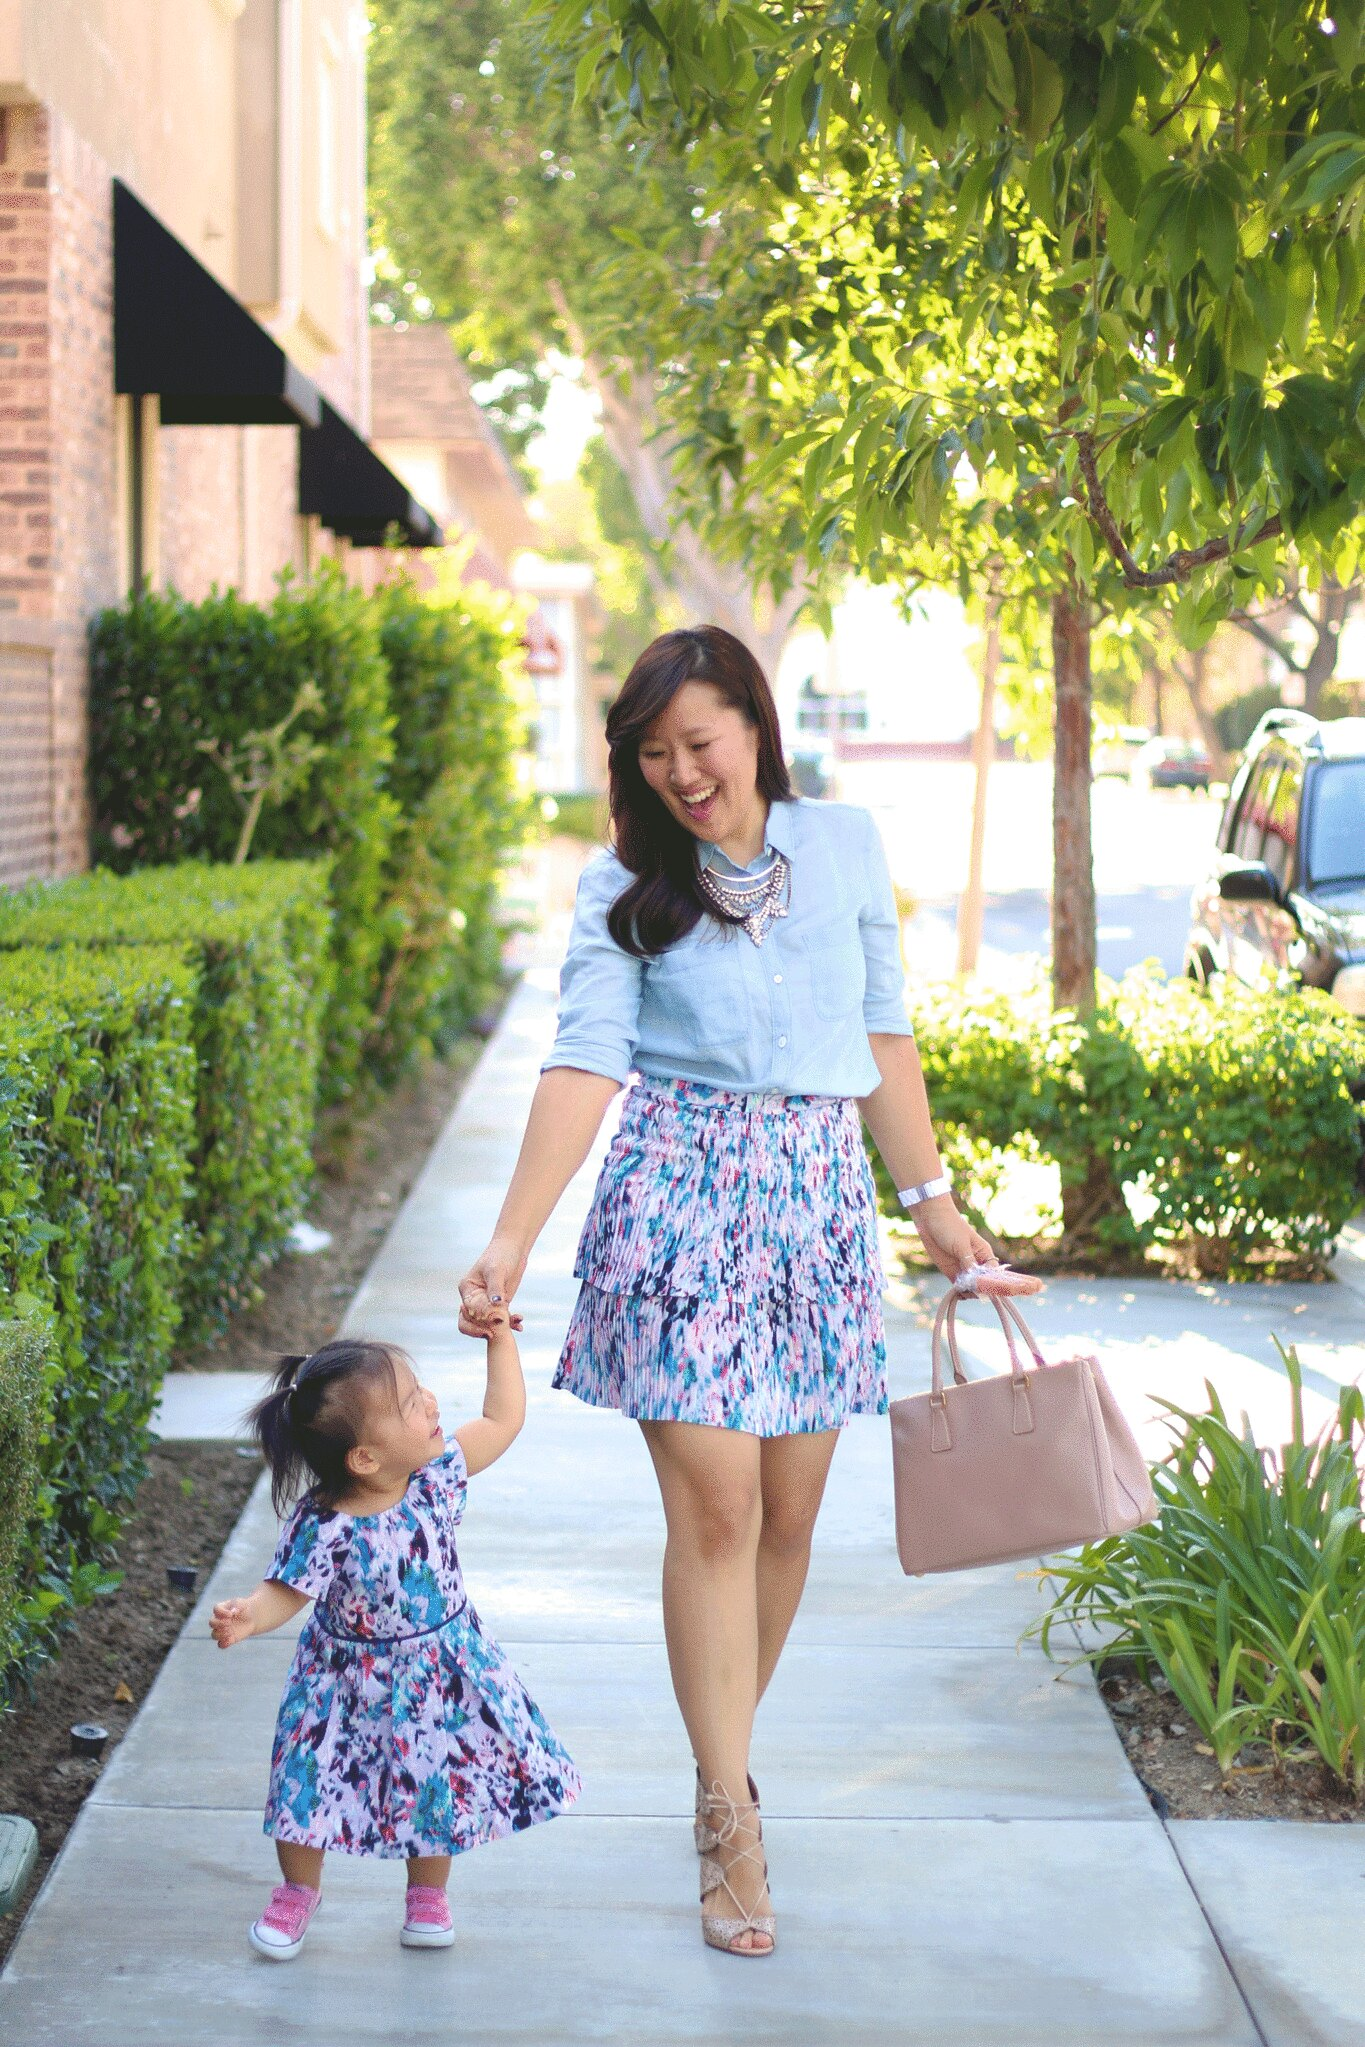 simplyxclassic, mommy and me, jcrew, crewcuts, floral skirt, floral print, floral dress, chambray top, prada bag, mommy blogger, fashion, bauble bar, orange county